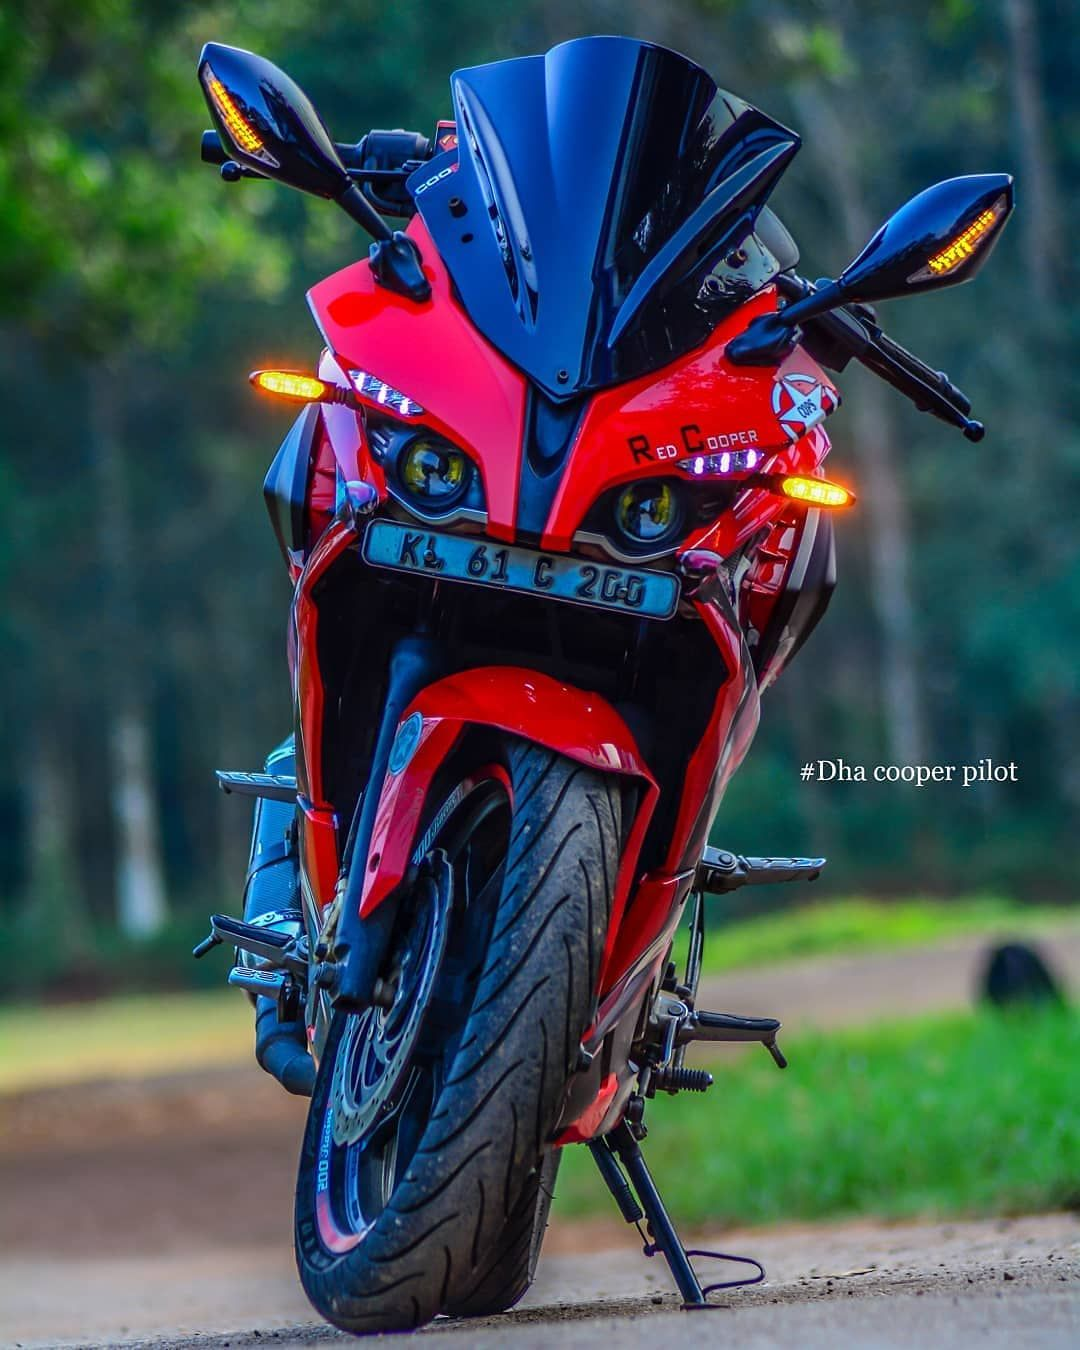 Visor 1500 Mirror With Indicators 1800 Exhaust Yoshimura 5800 P200ns Ns200 Photoshop Digital Background Studio Background Images Bike Pic Full hd pulsar rs 200 hd wallpapers